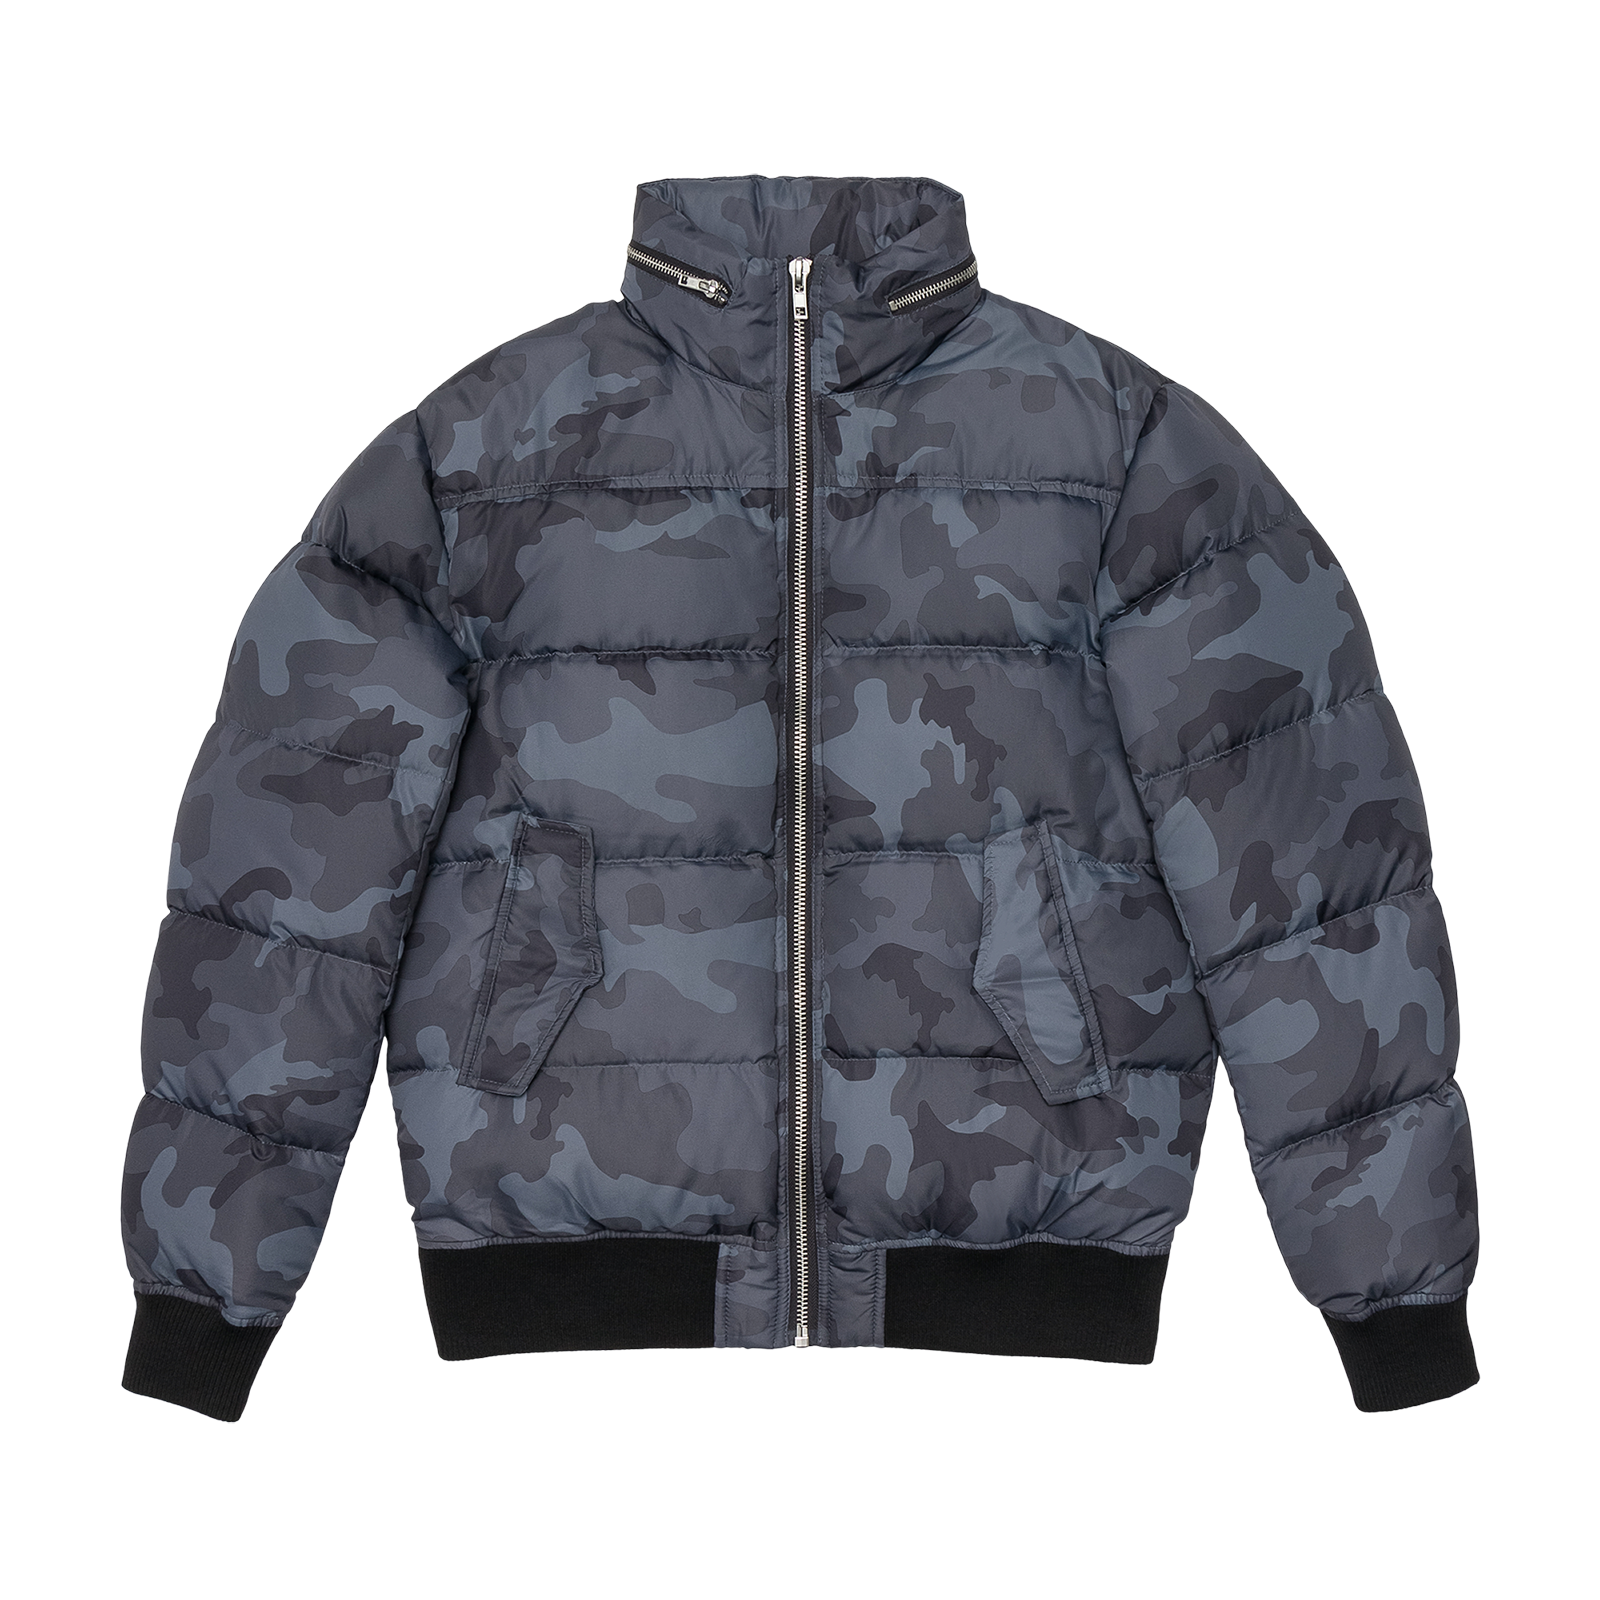 Puffer jacket product photography